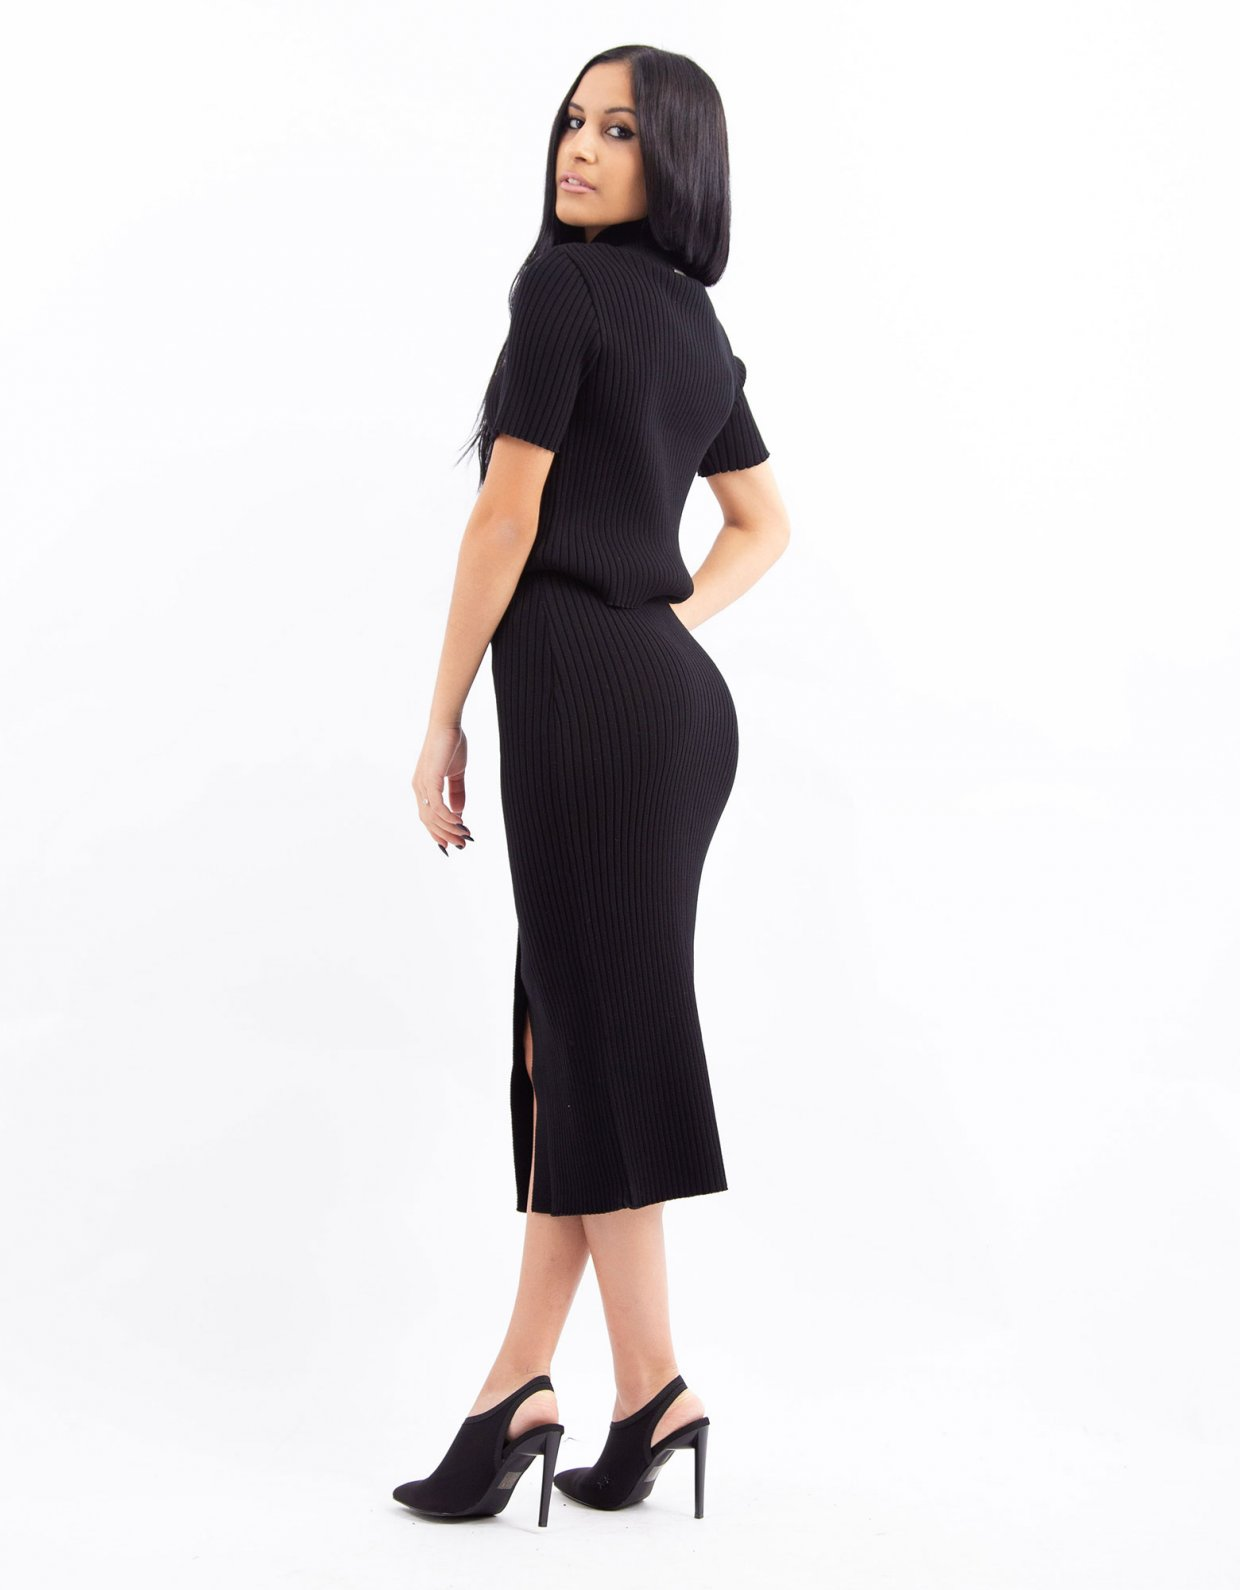 Combos Knitwear Combos W40 – Black buttoned skirt